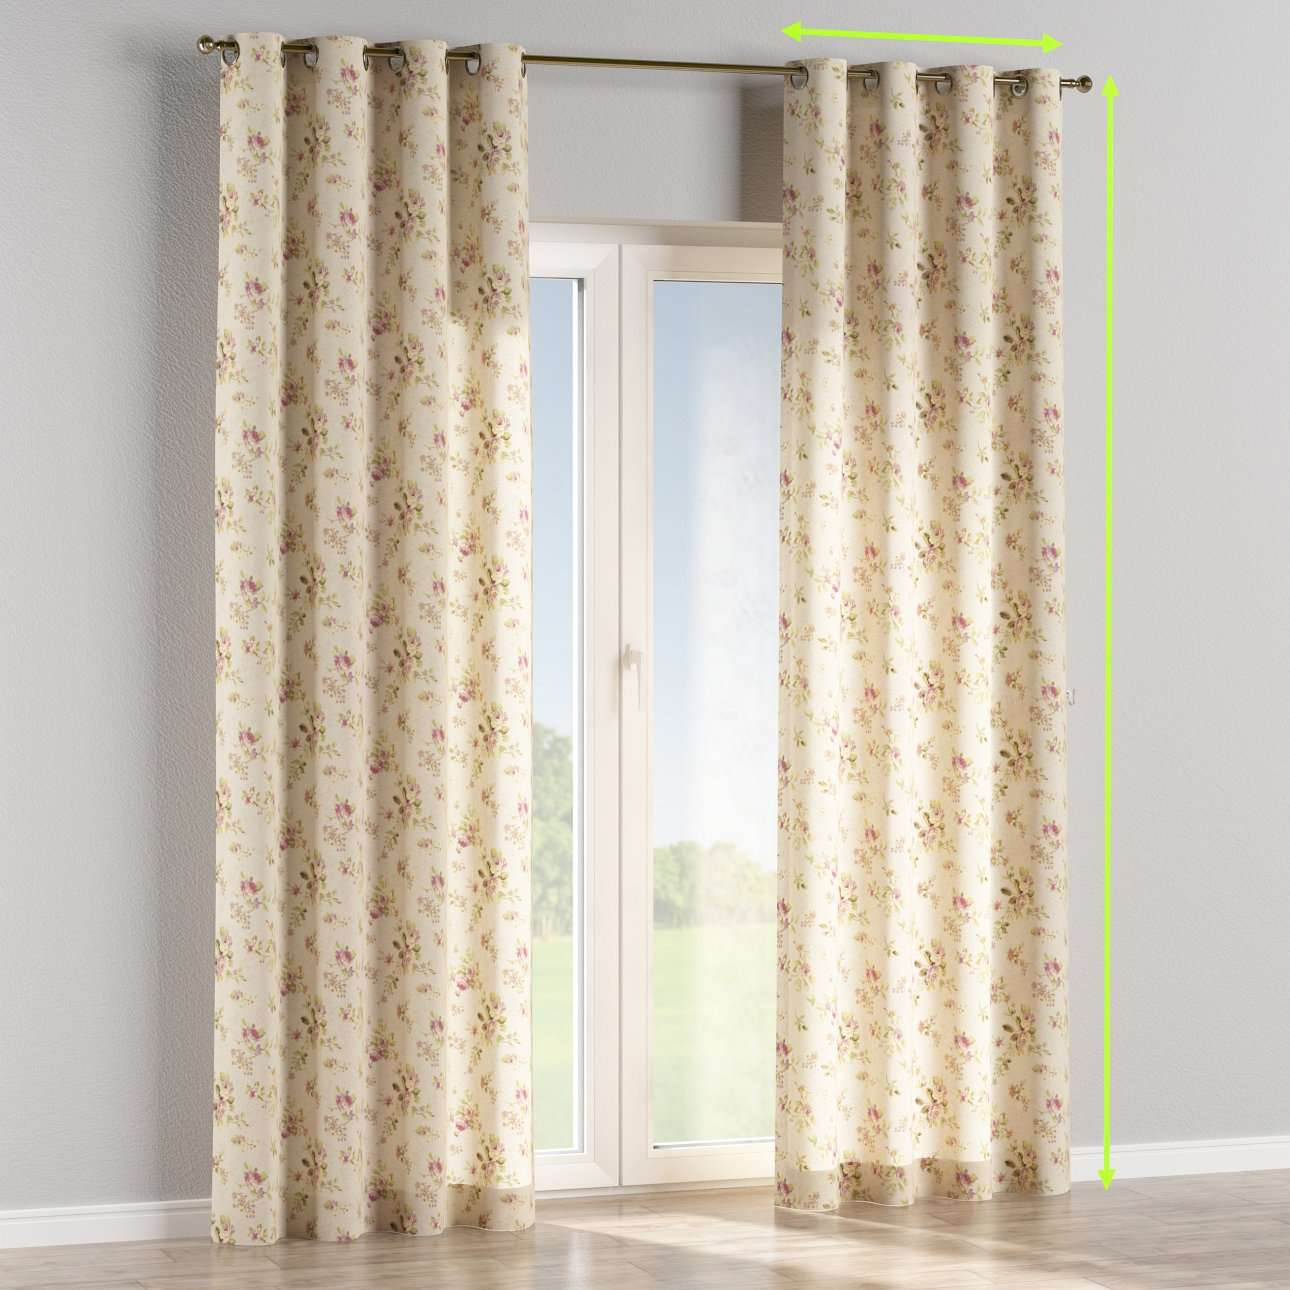 Eyelet lined curtains in collection Londres, fabric: 122-07